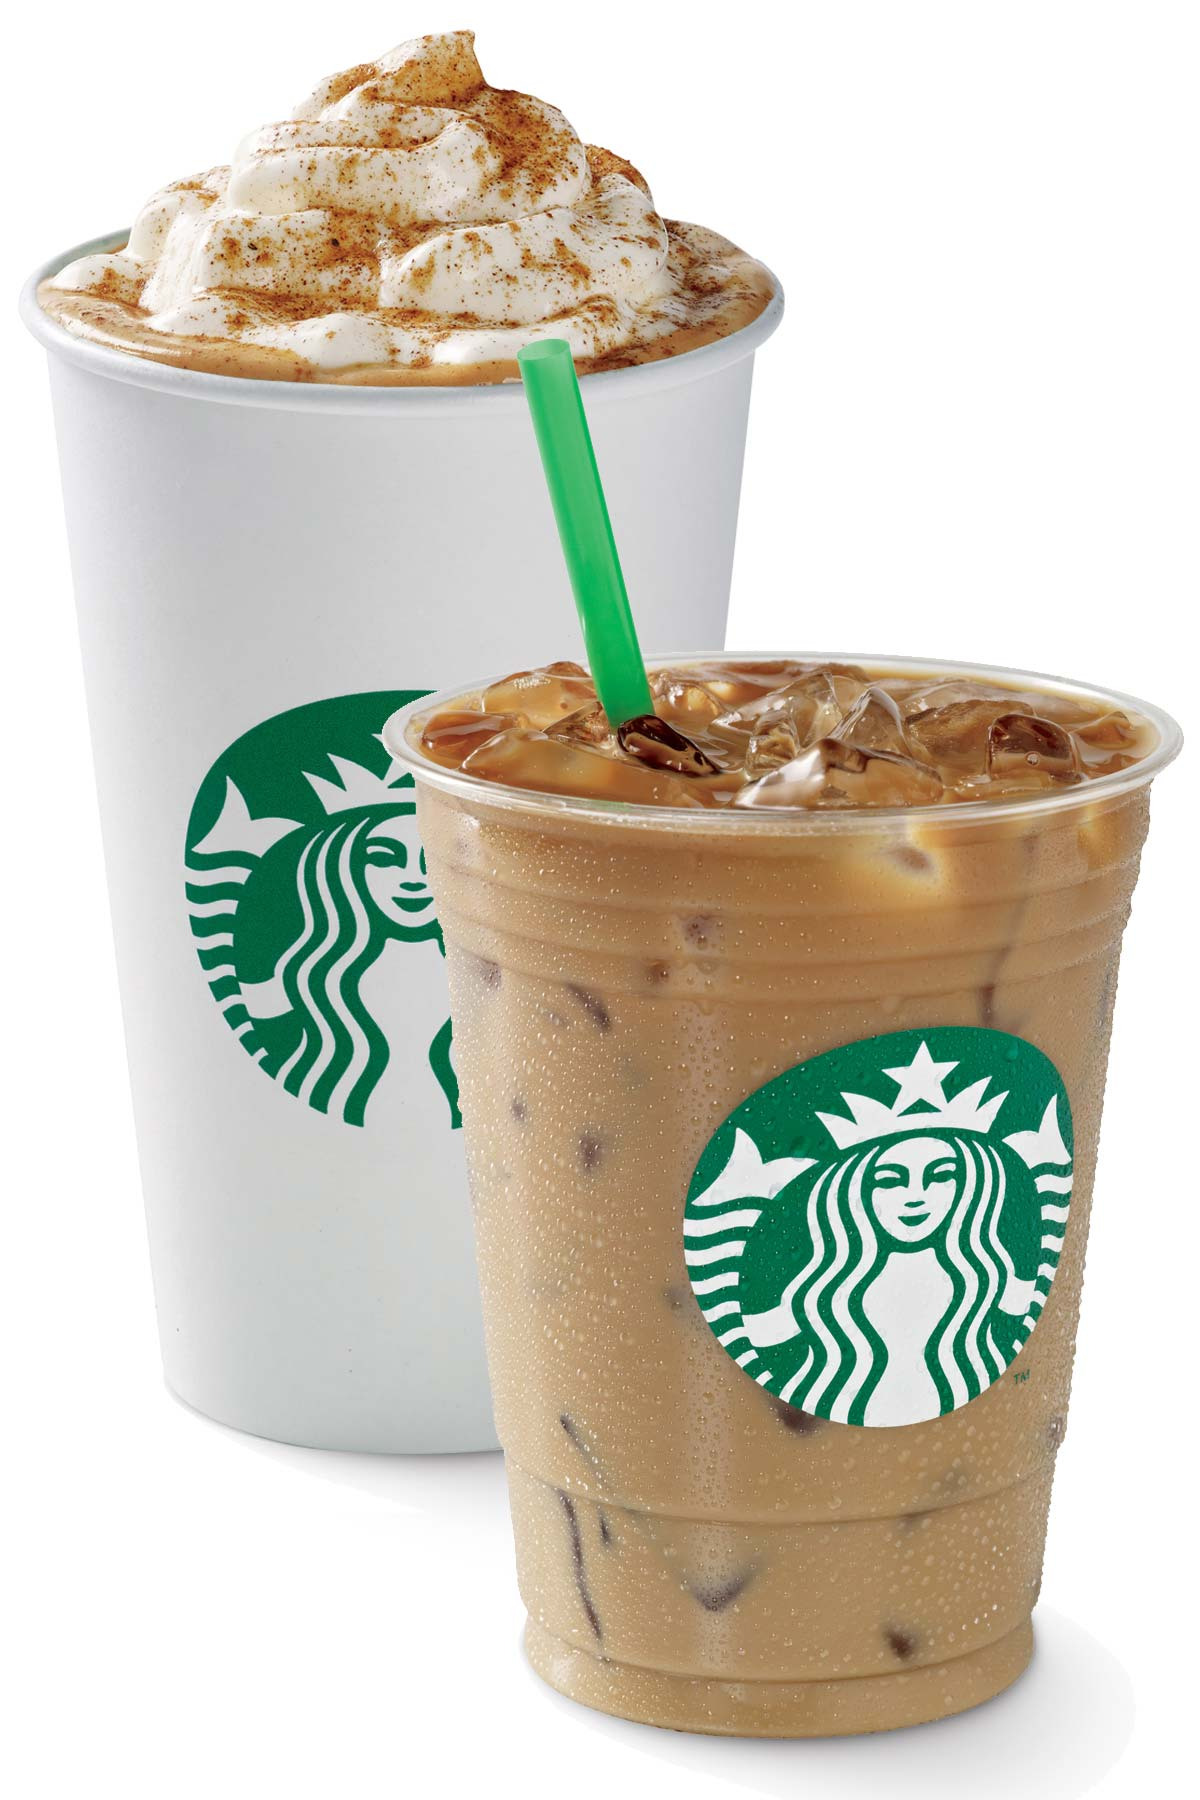 Two Starbucks drinks, one hot and one iced.